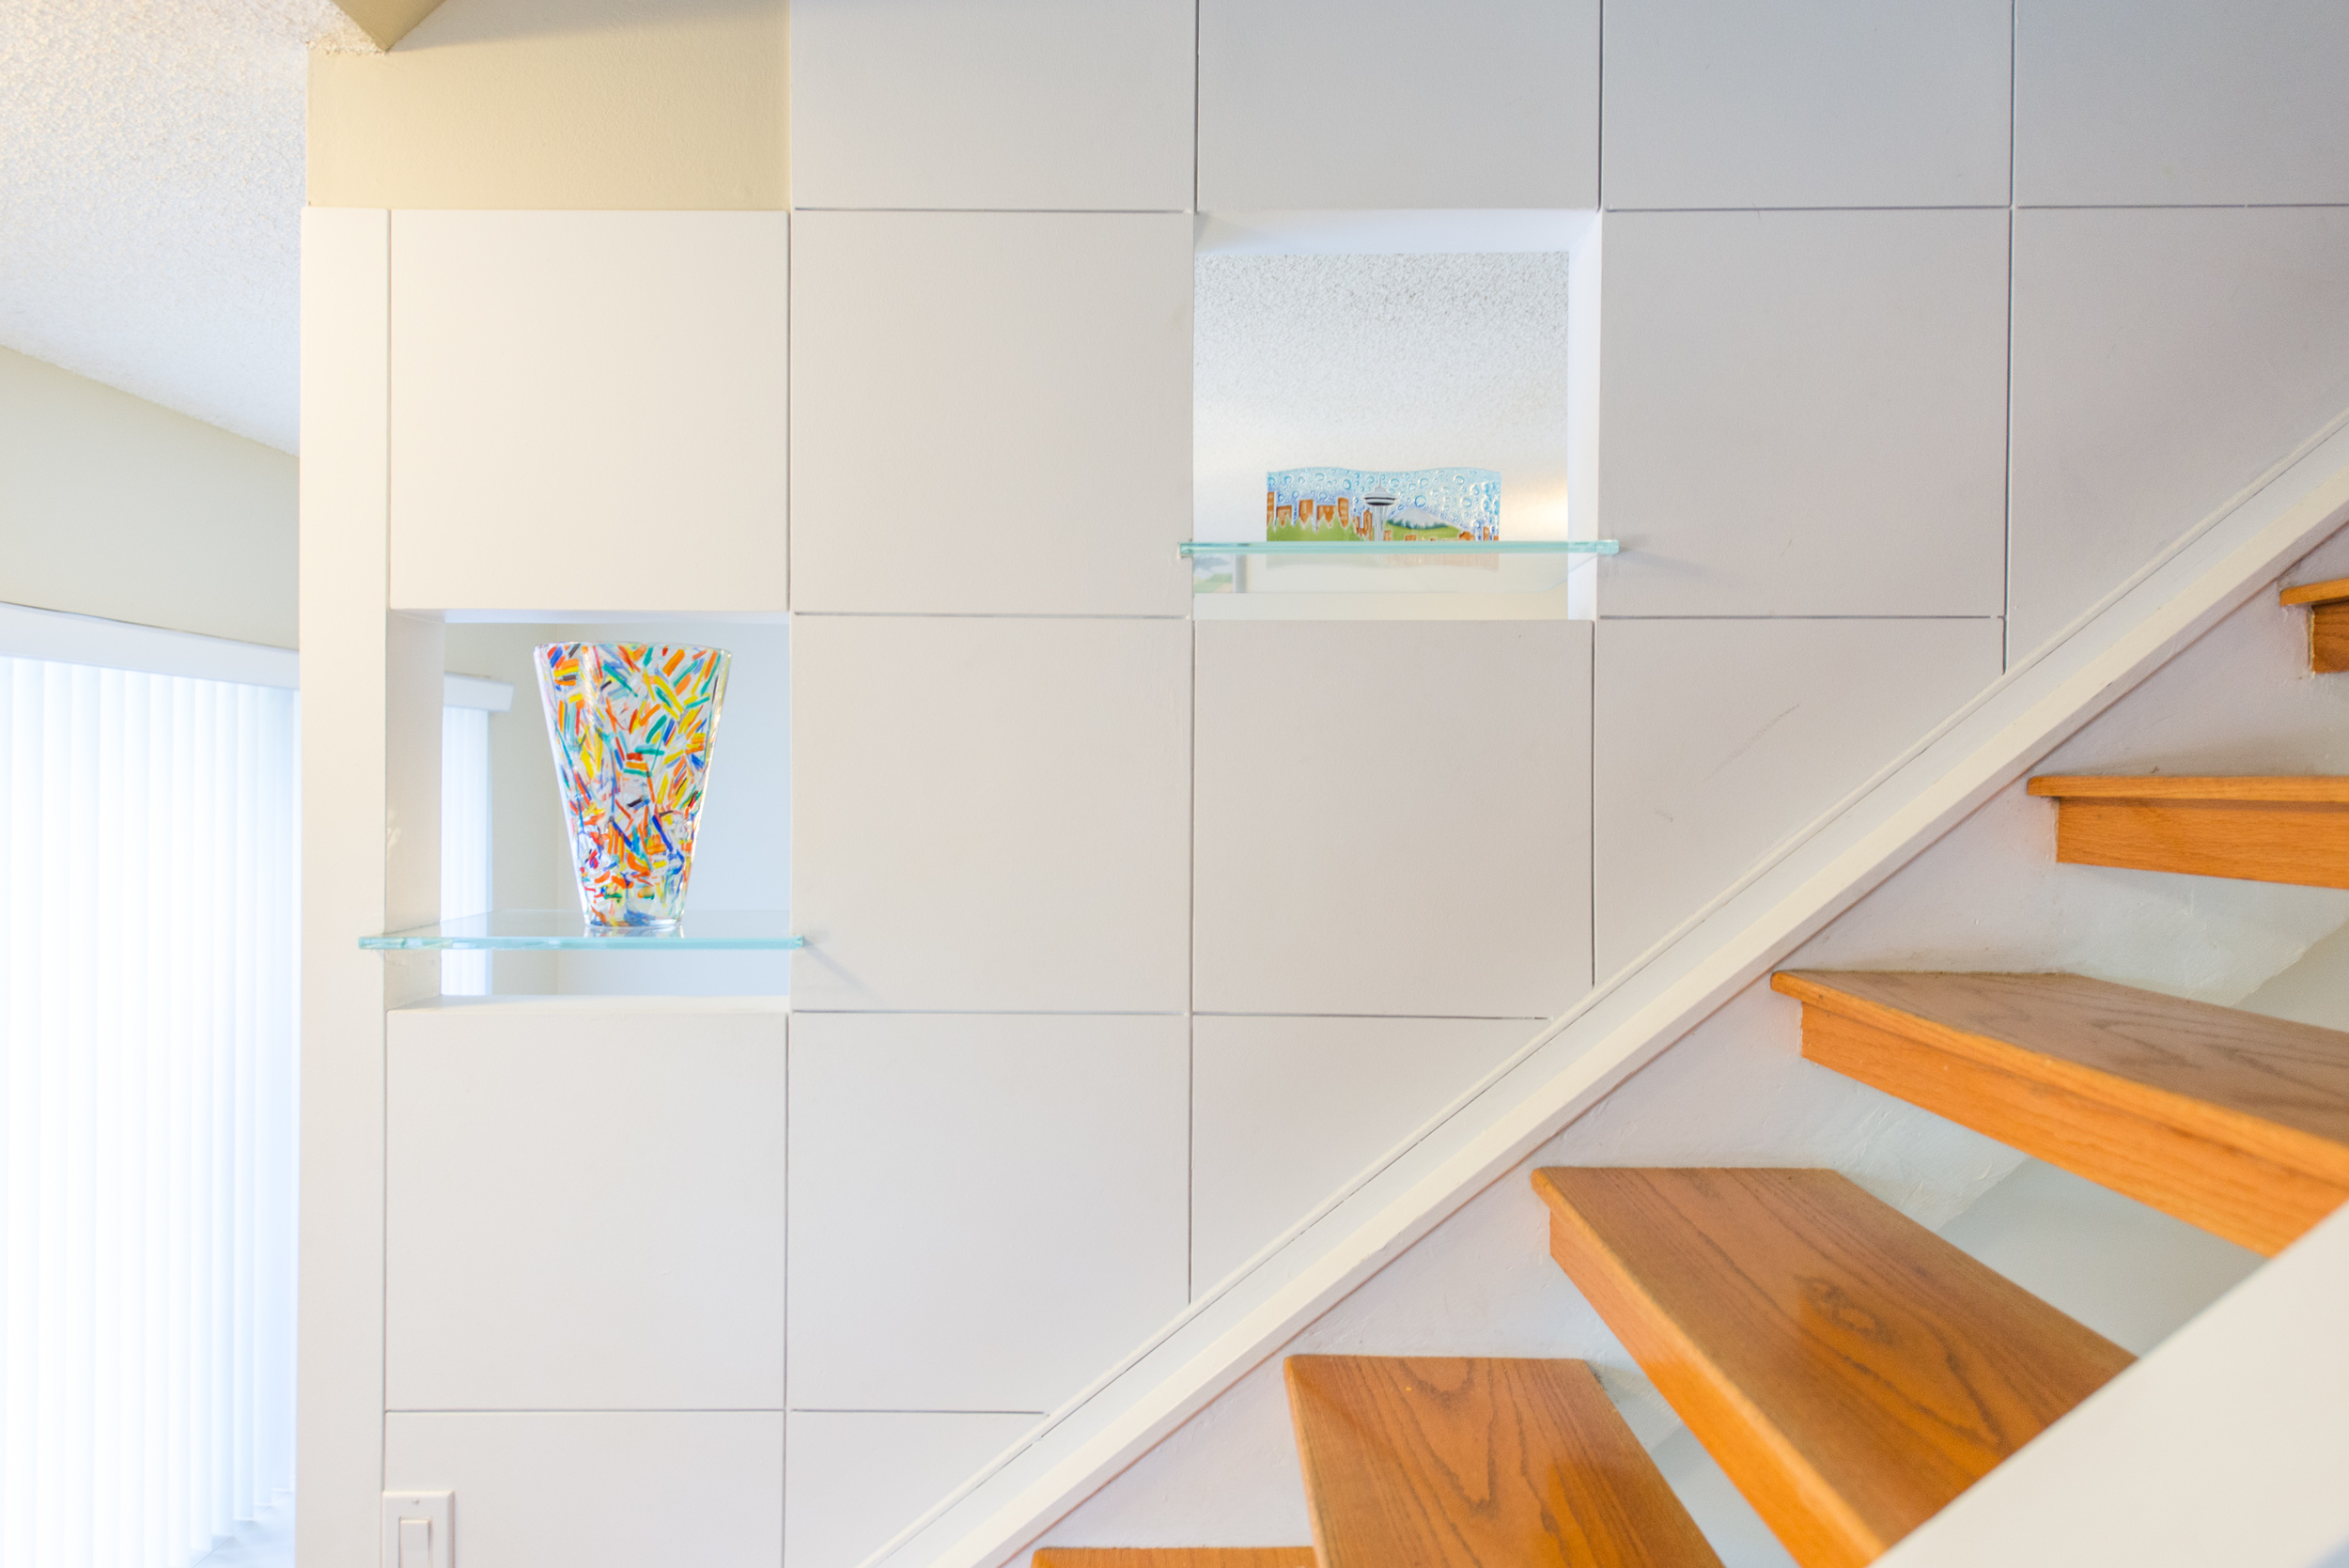 Beautiful detailing and floating glass shelves lead up the staircase to the 2nd floor.